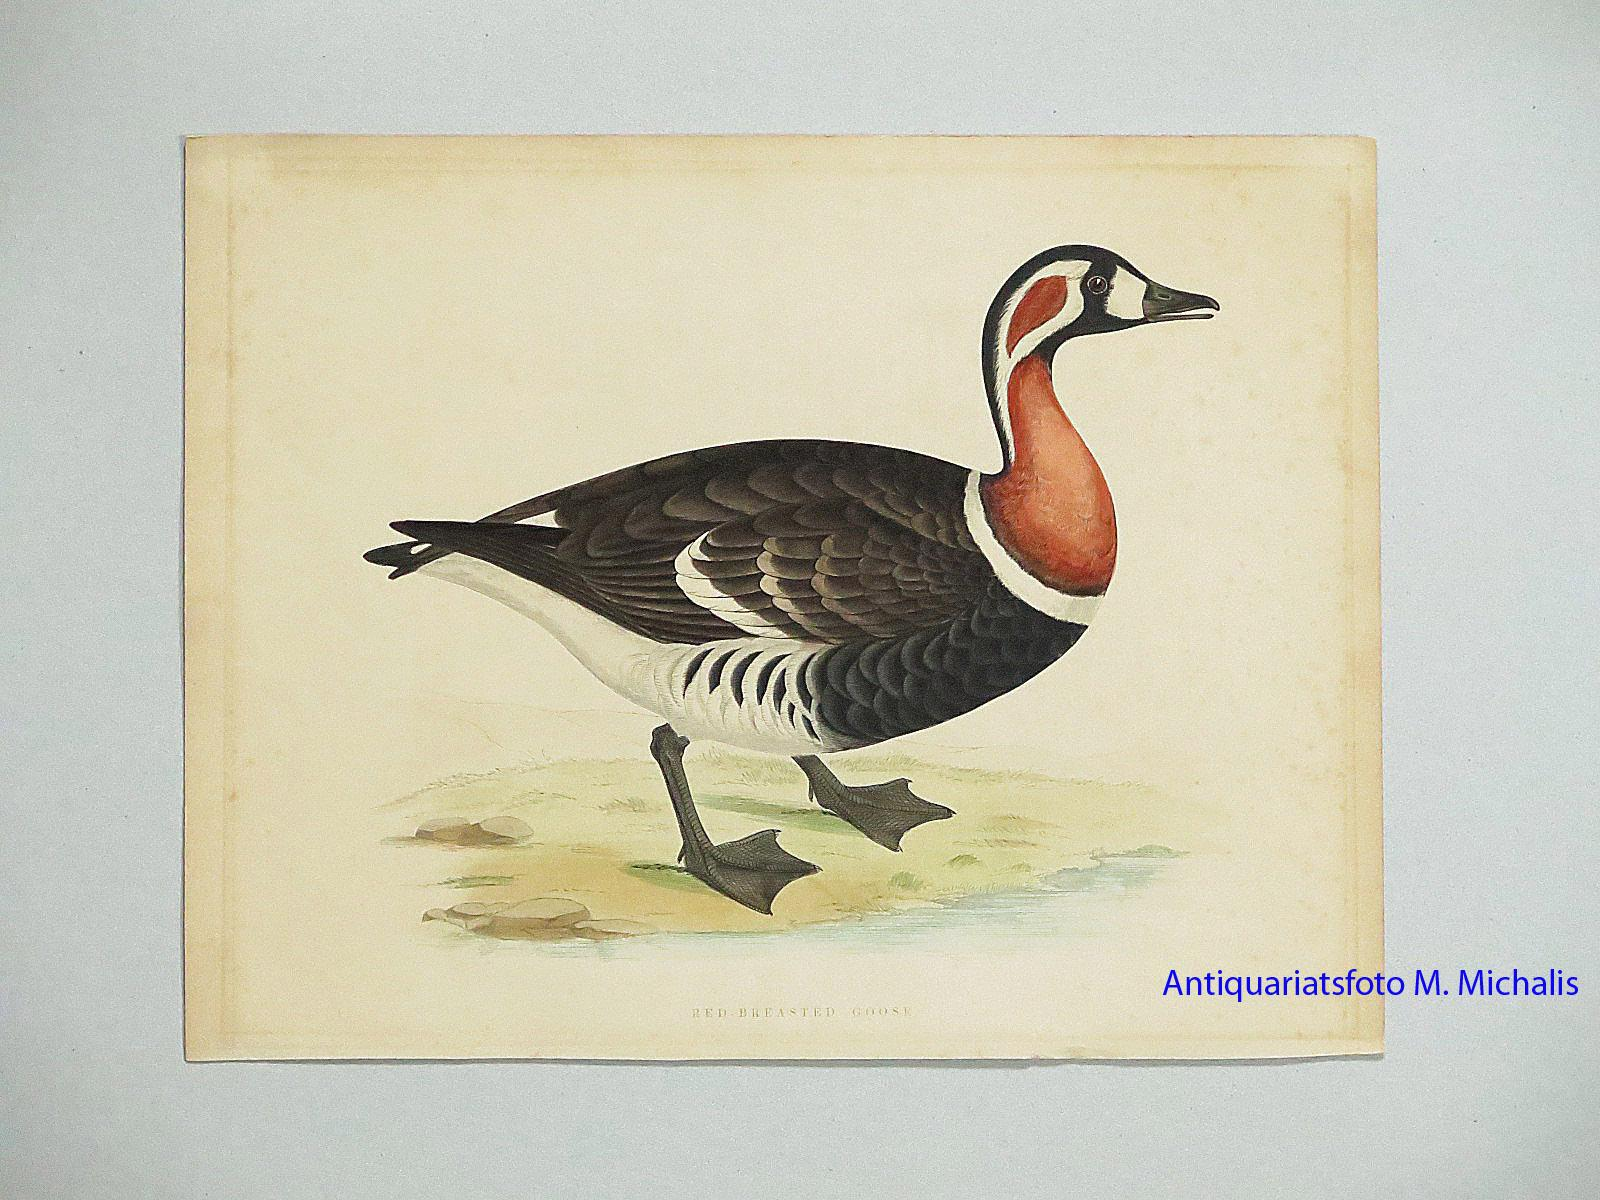 RED-BREASTED GOOSE. - An Original Antique Hand Coloured Print, ca. 1840. Large format: plate mark 11.6 x 8.7 Ins. Fawcett, B. [Fine] (bi_19445905163) photo